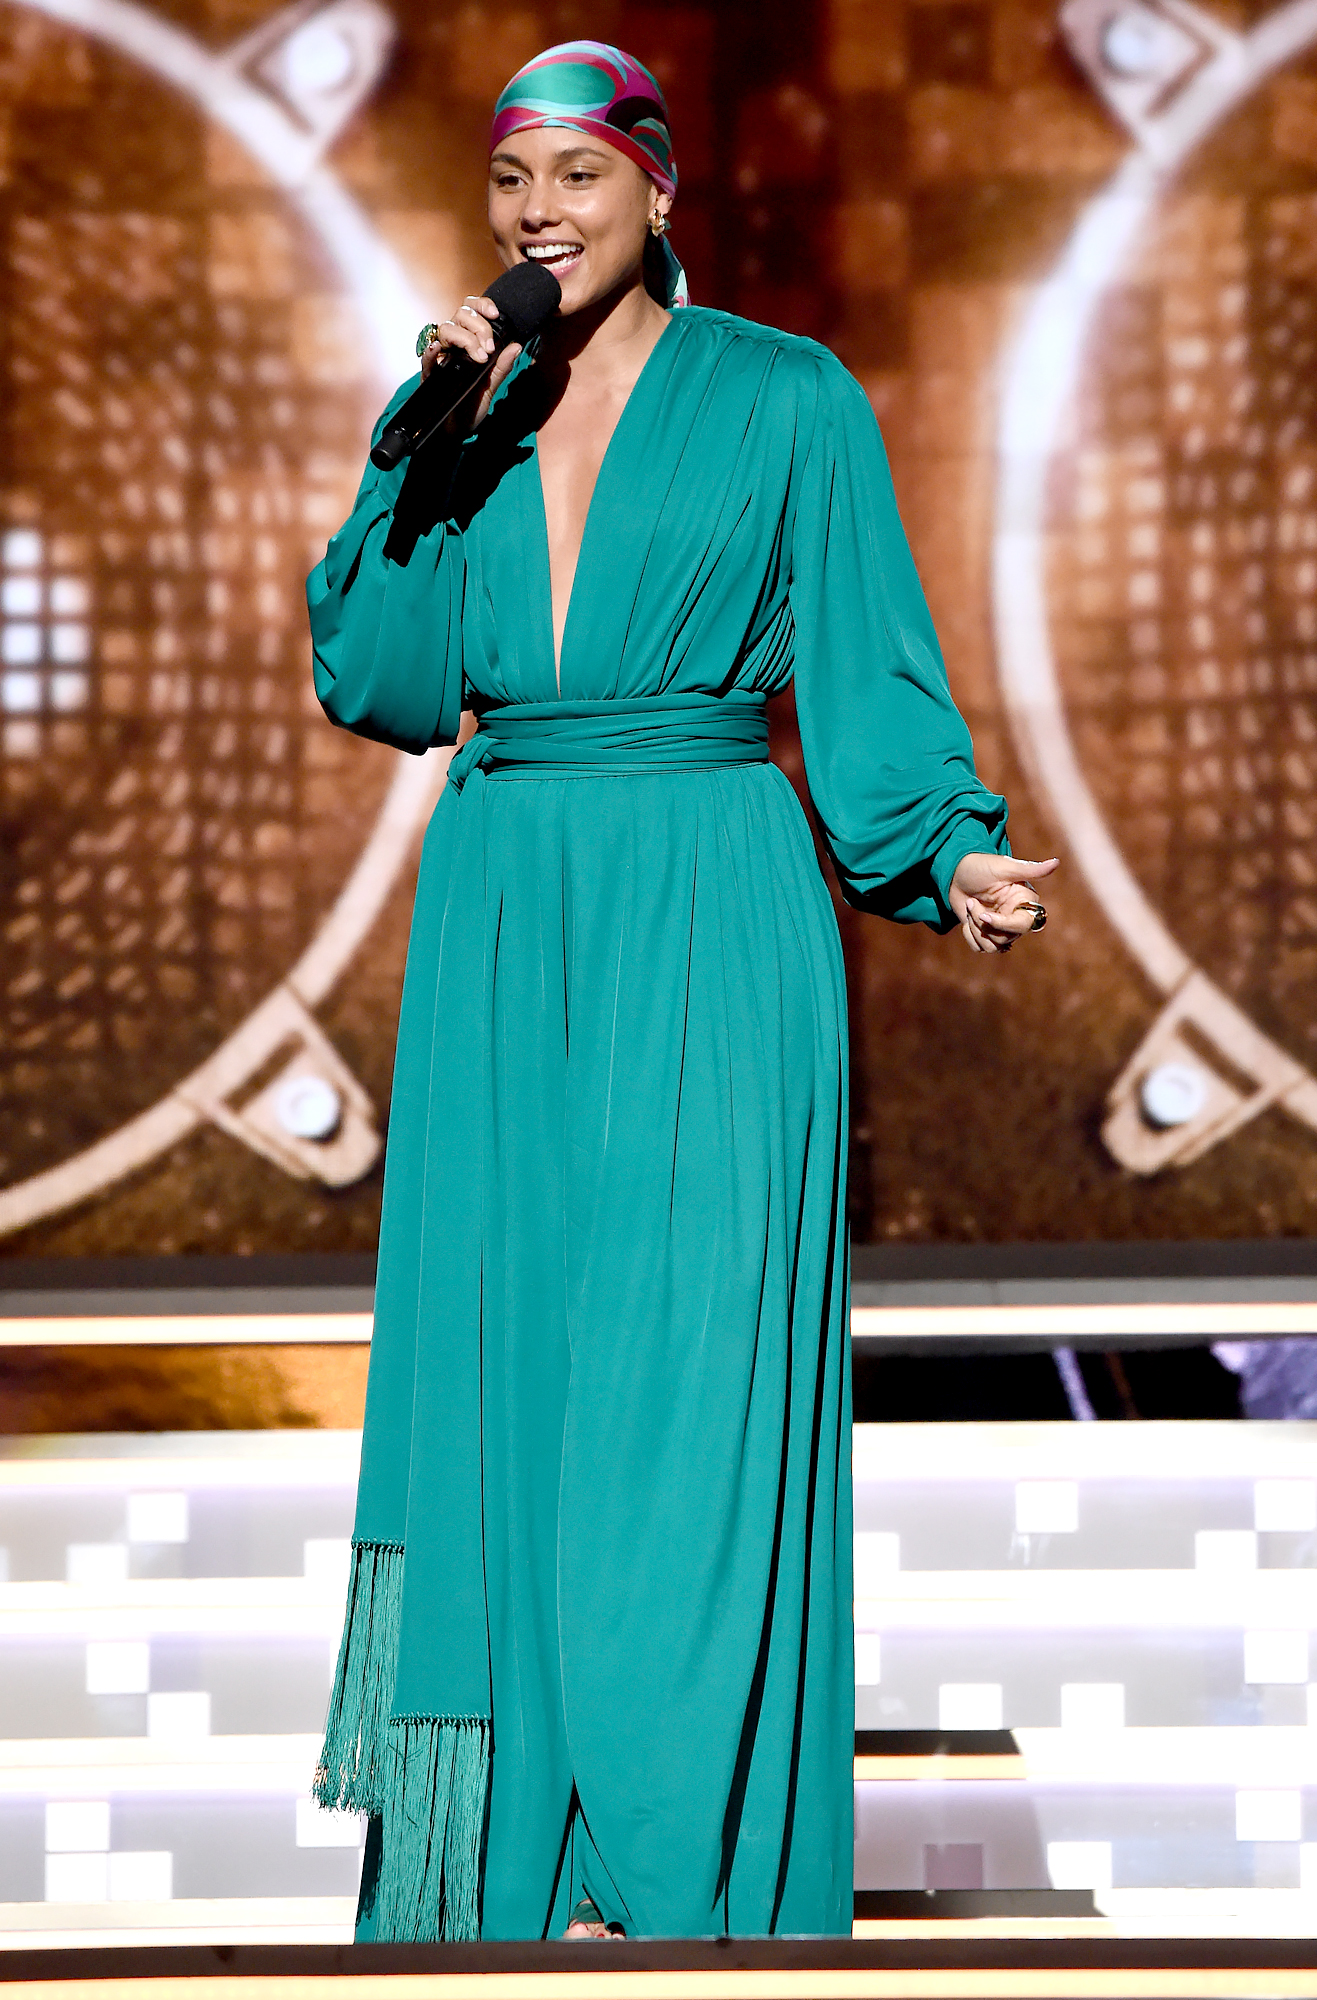 alicia-keys-grammys-2019-looks-5 - Giving Us all the '70s vibes, Keys opened the show in a teal Oscar de la Renta jumpsuit that she paired with a printed Emilio Pucci headscarf and Jill Heller and Cartier jewelry.